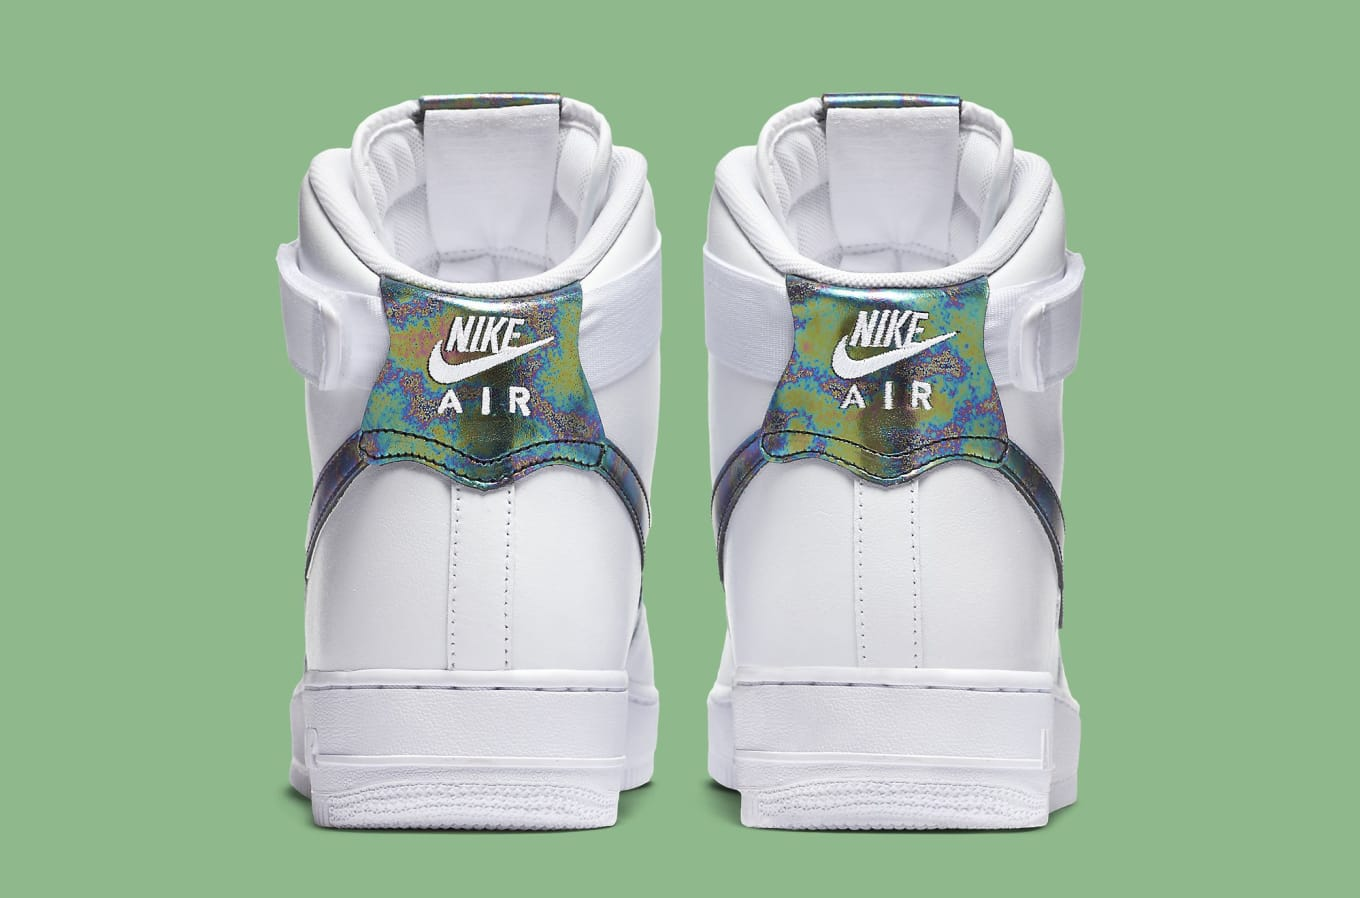 d7f02c571f9d0b Iridescent Accents for Nike s Latest Air Force 1. Shiny Swooshes.